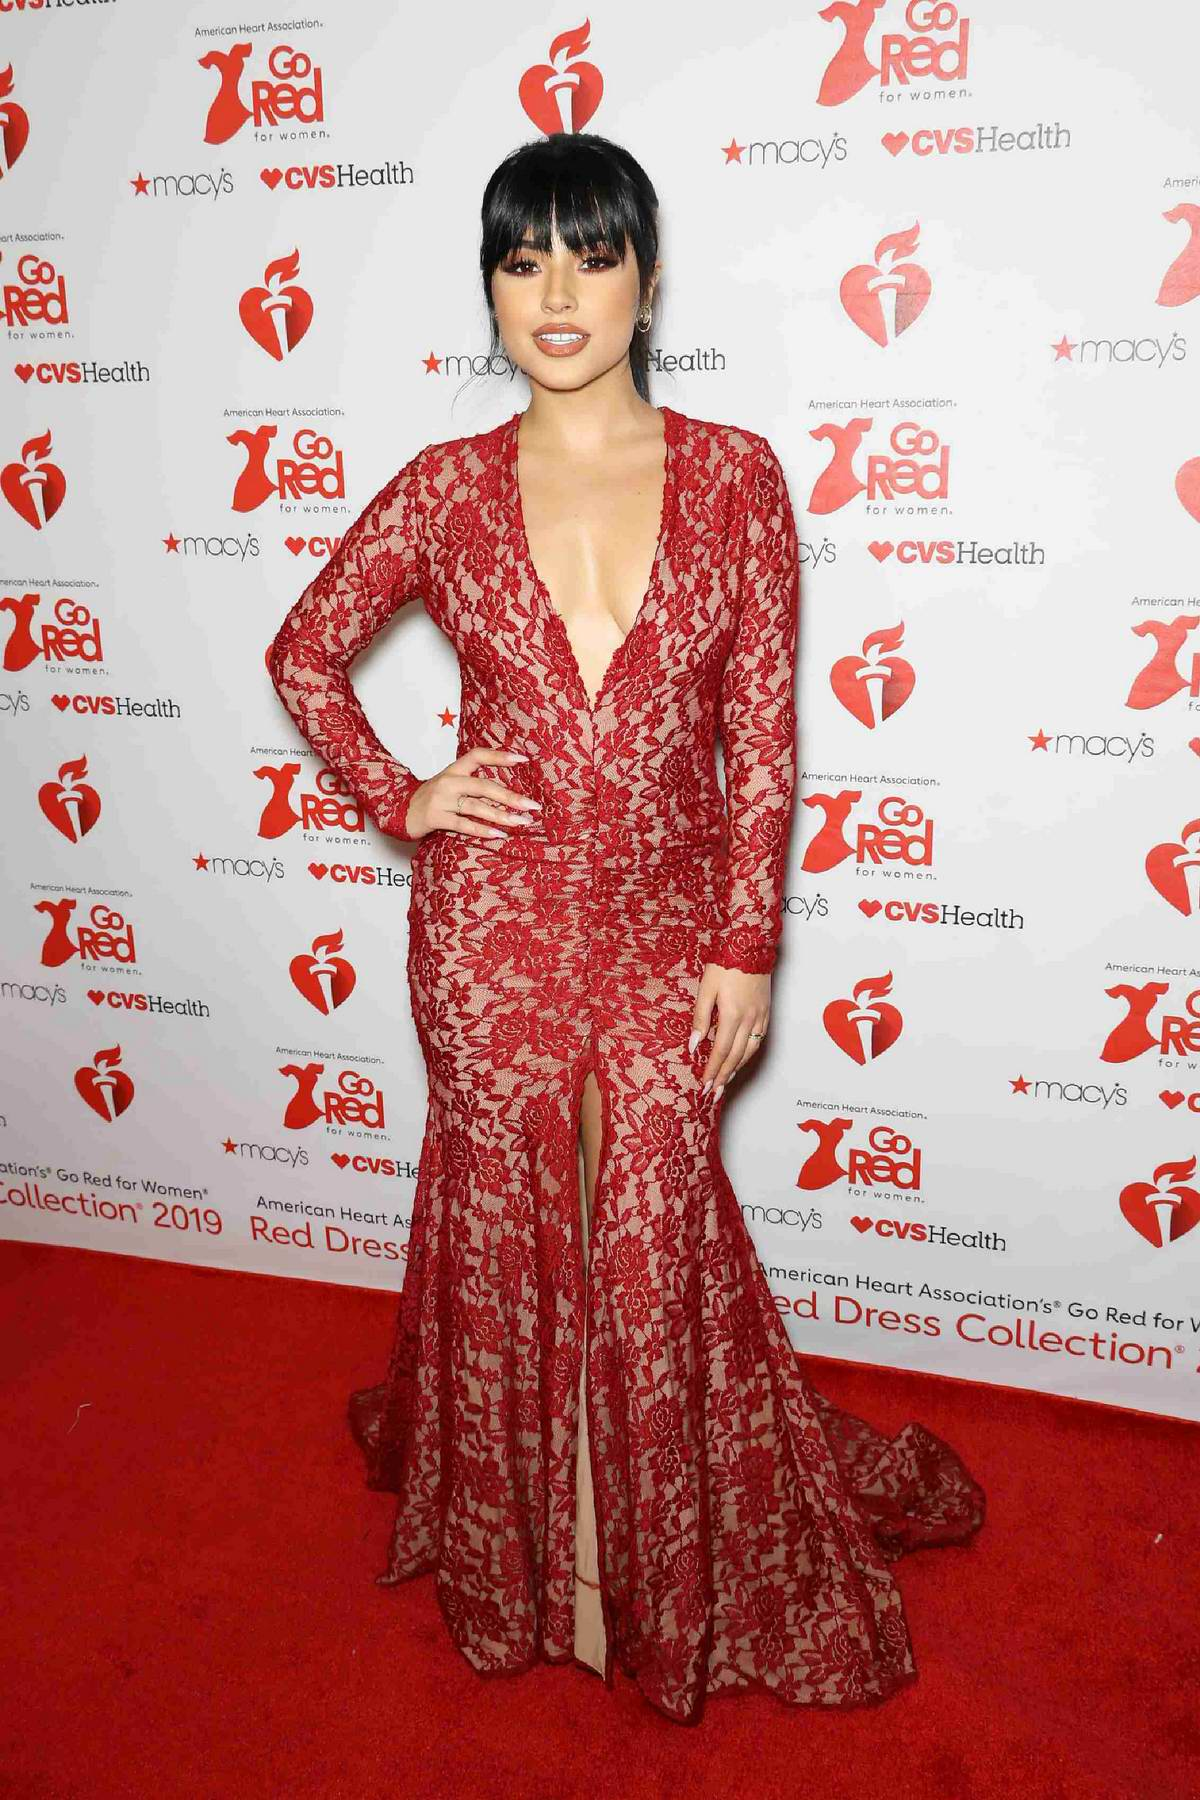 Becky G attends the 15th Annual Heart Truth Go Red for Women Red Dress Collection 2019 in New York City